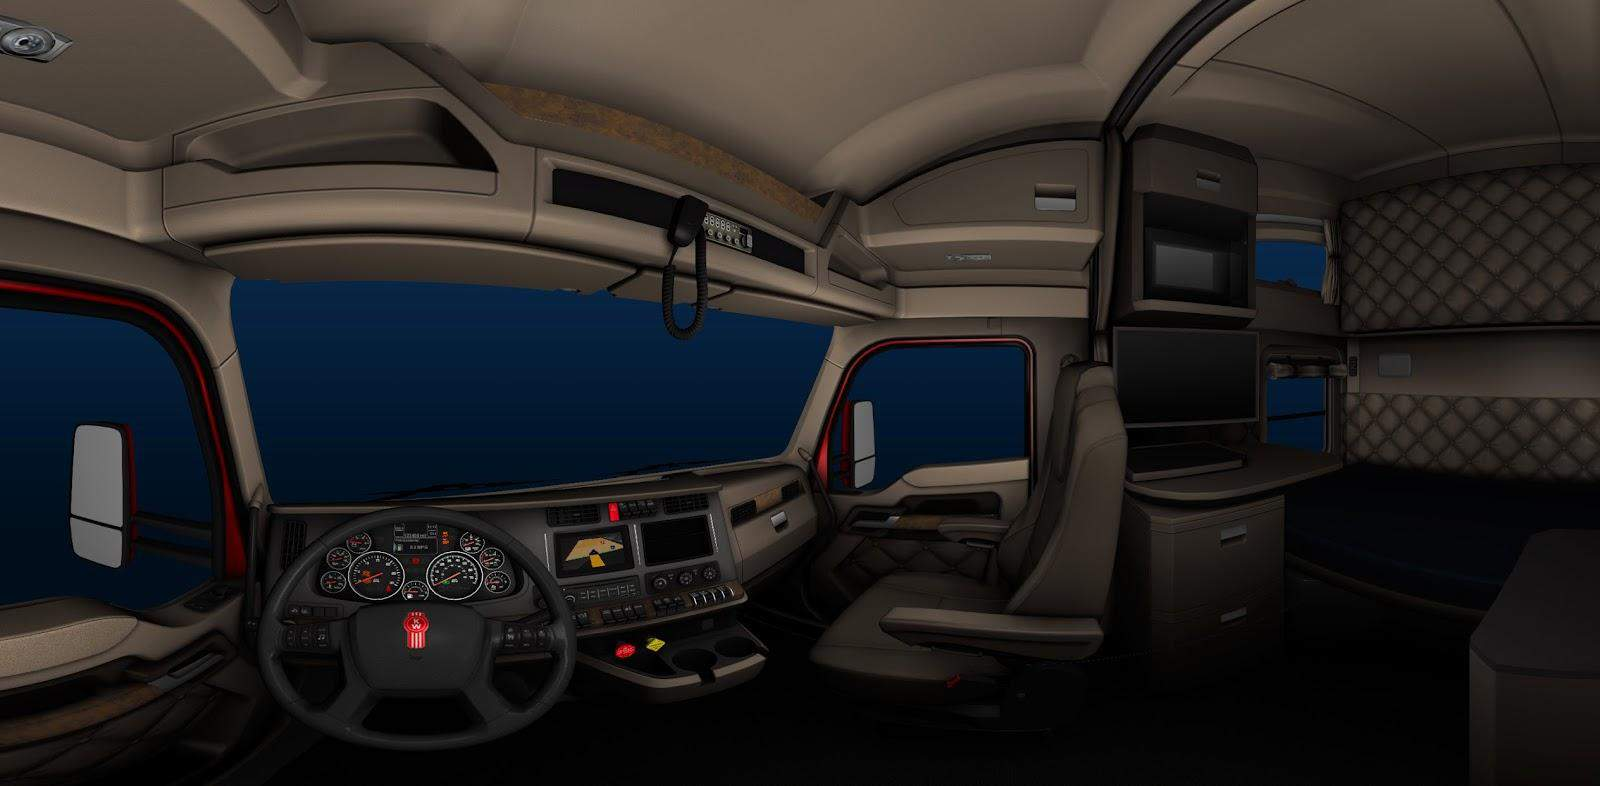 Kenworth T680 Truck Interior For Ats Game American Truck